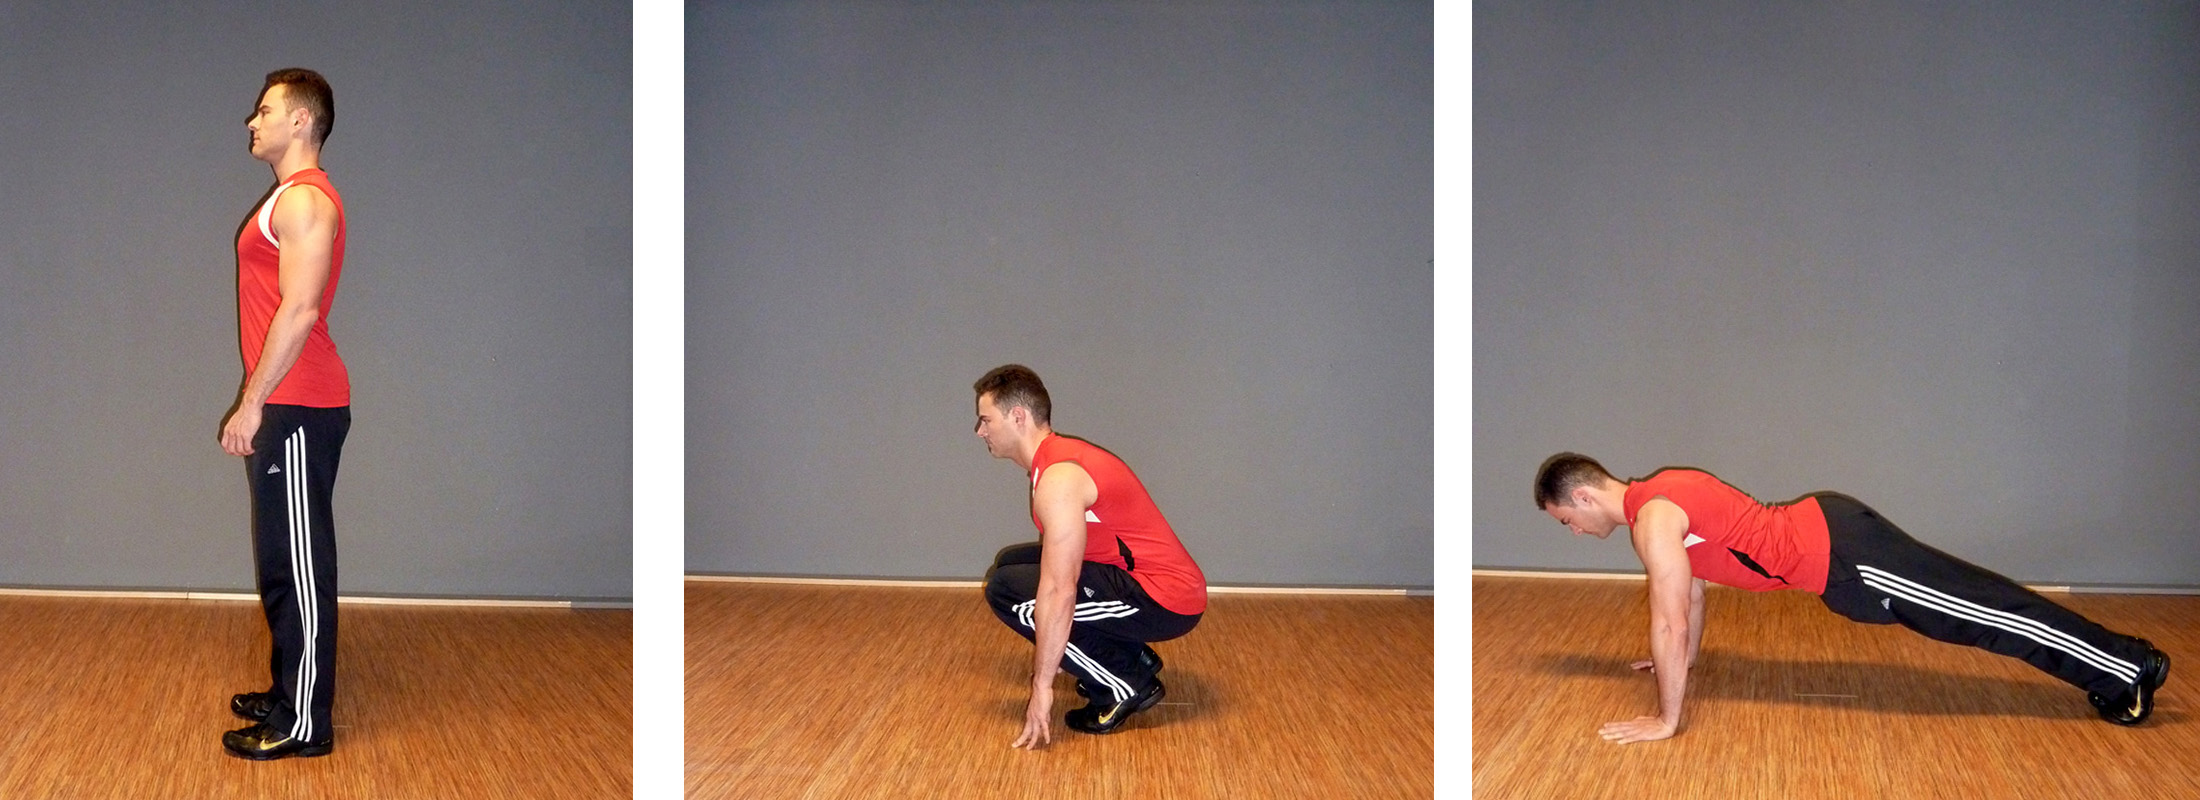 How to bend and thrust